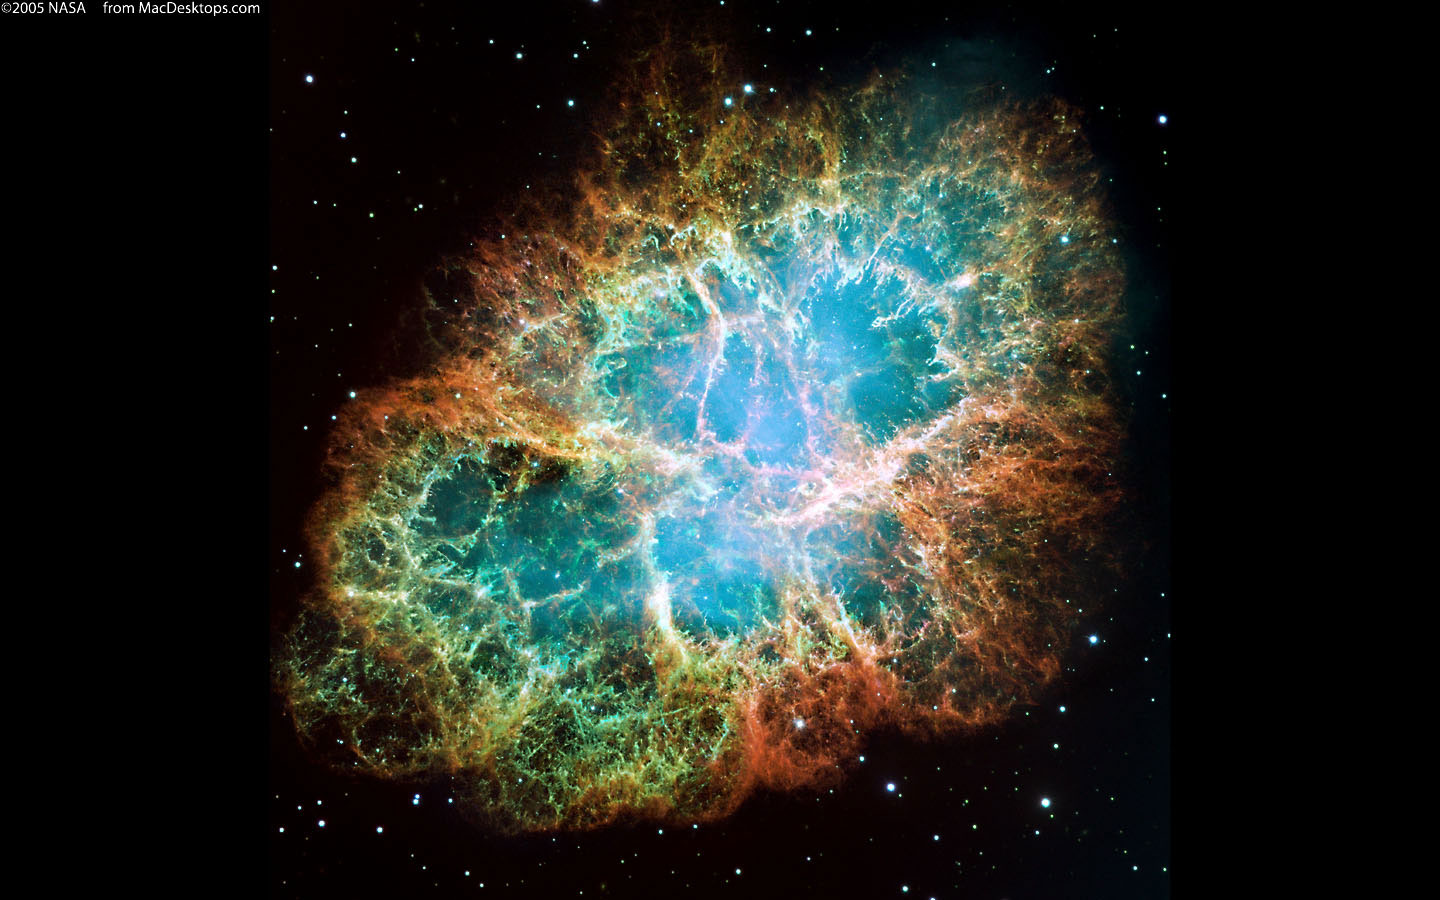 Crab Nebula Nasa 3388 Hd Wallpapers in Space   Imagescicom 1440x900